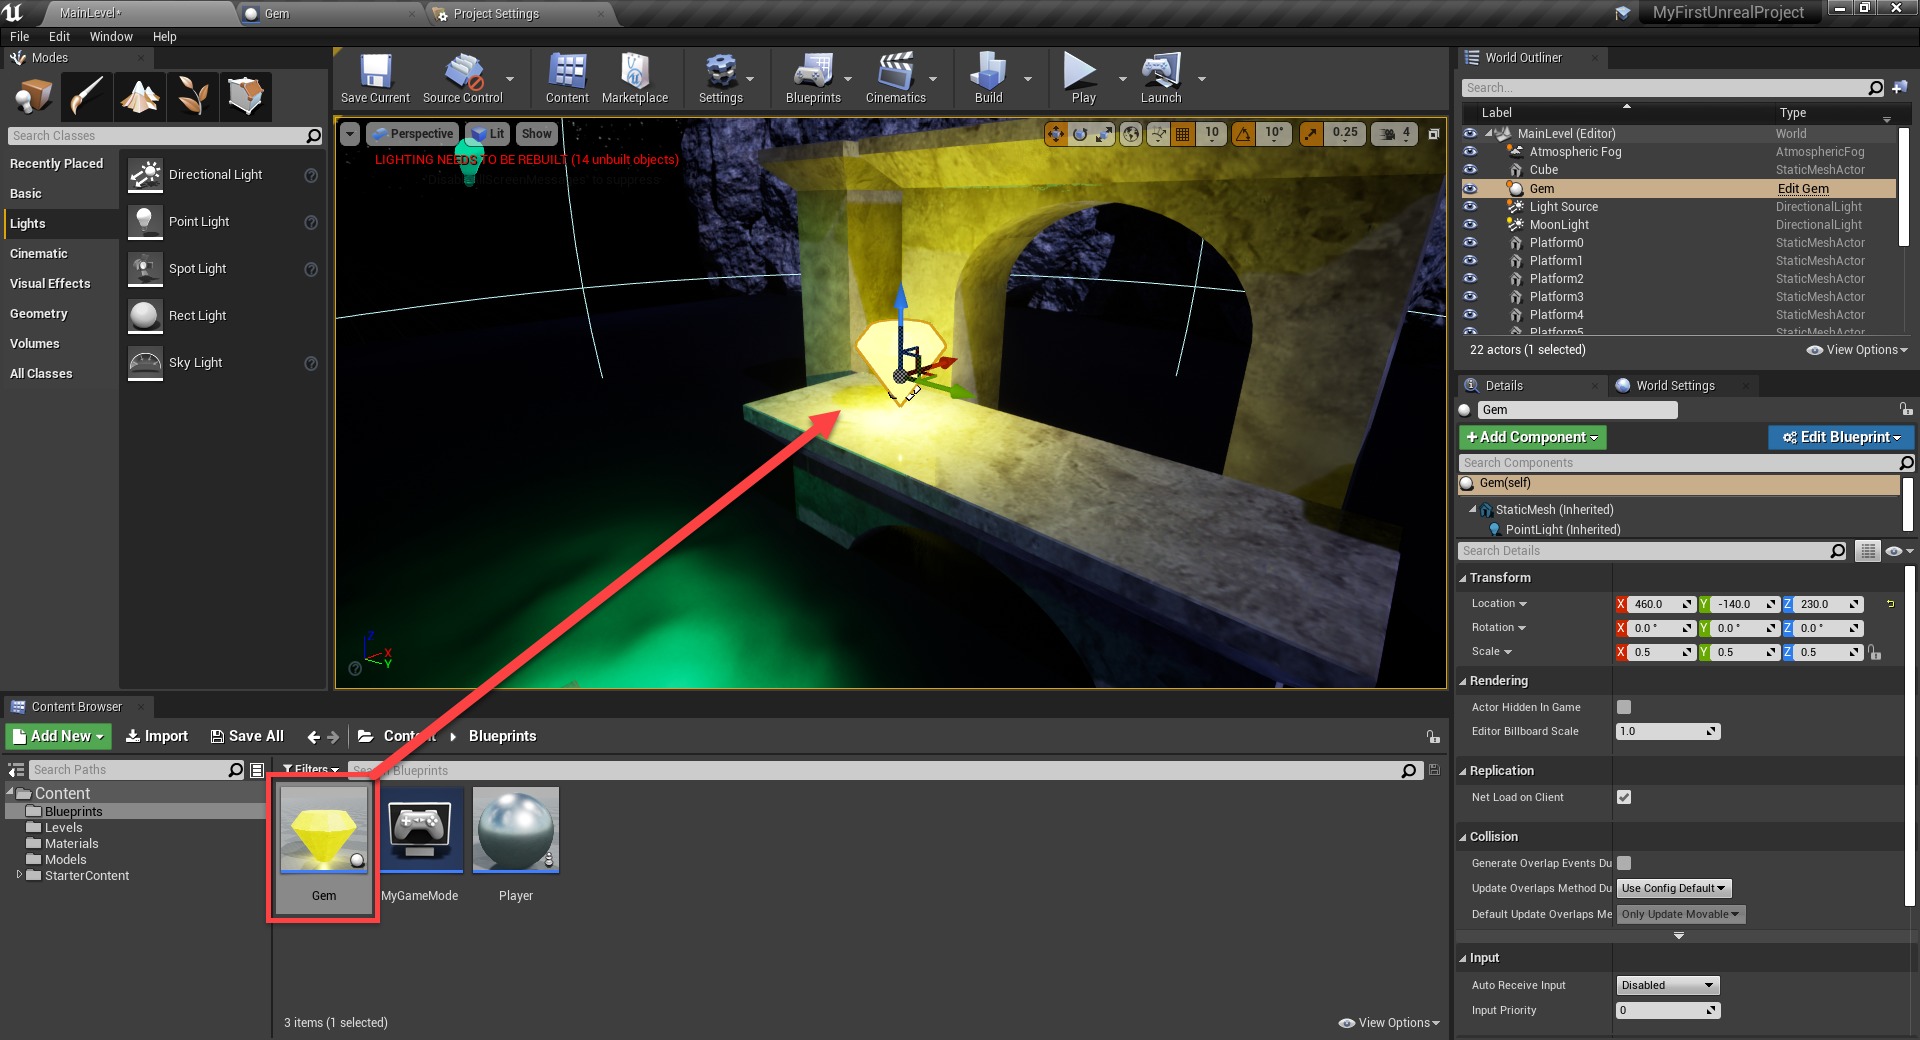 Unreal Engine with glowing gem added to scene